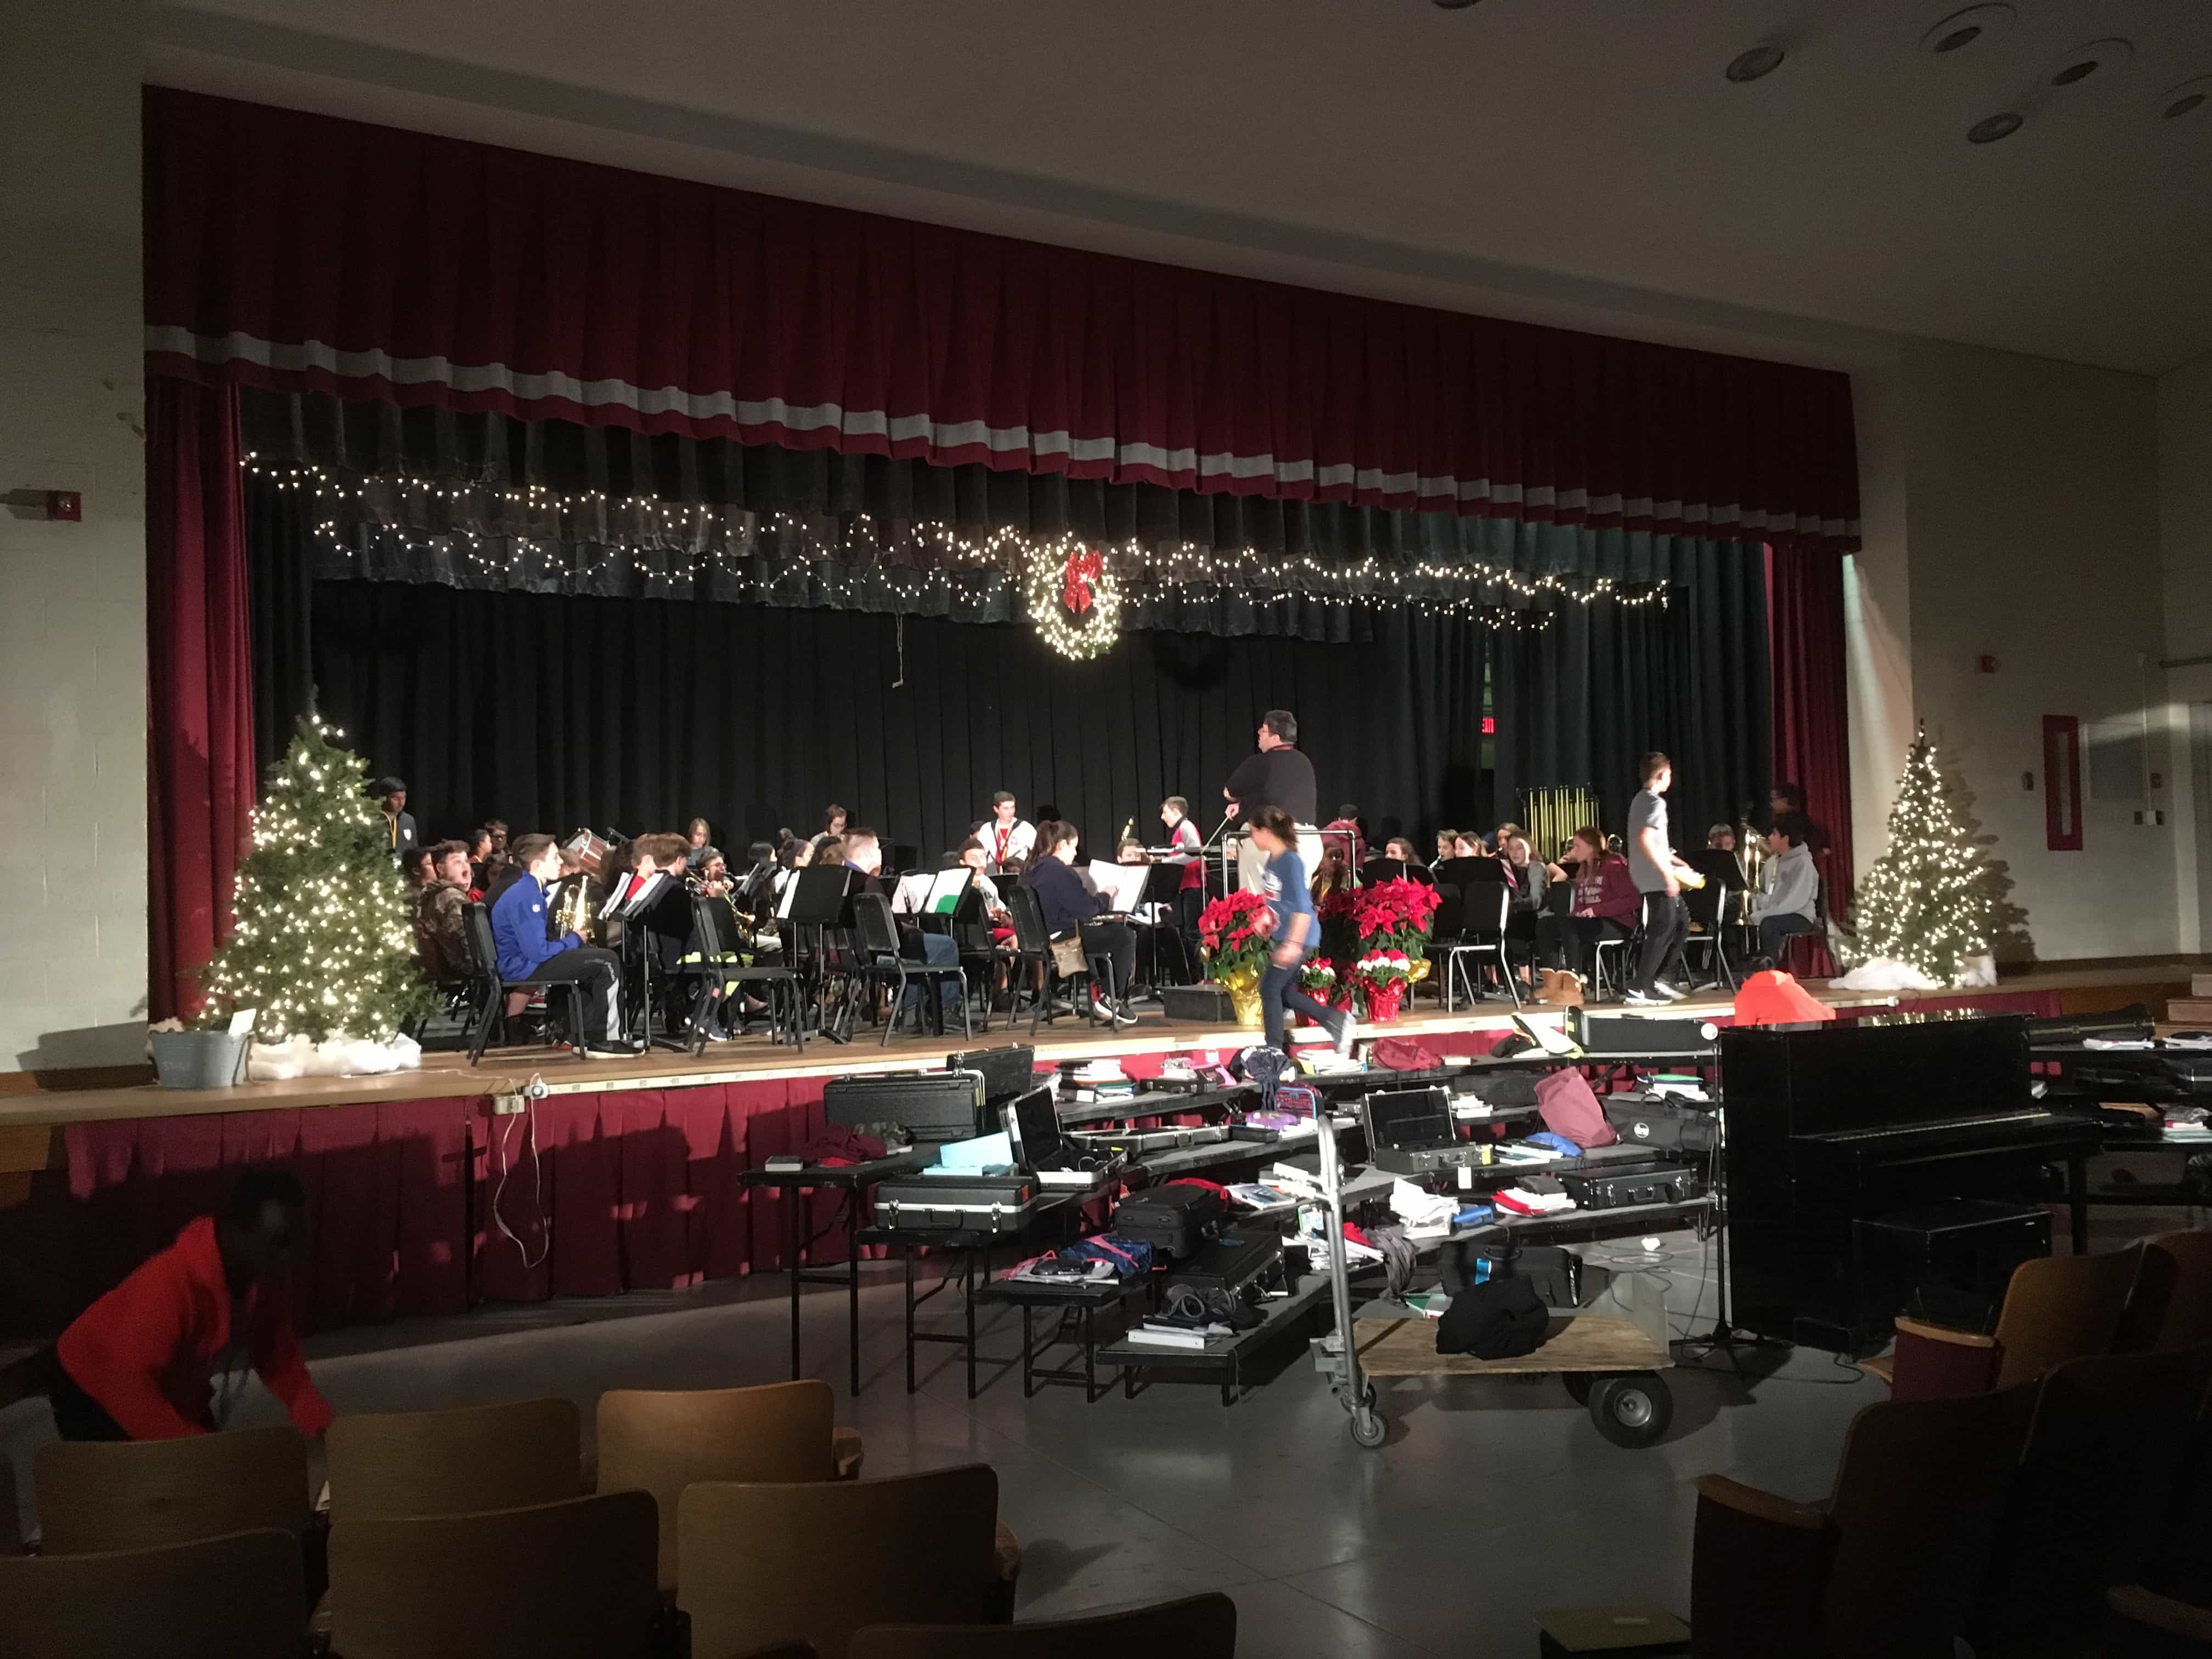 Holiday stage lighting in nj cmt sound systems